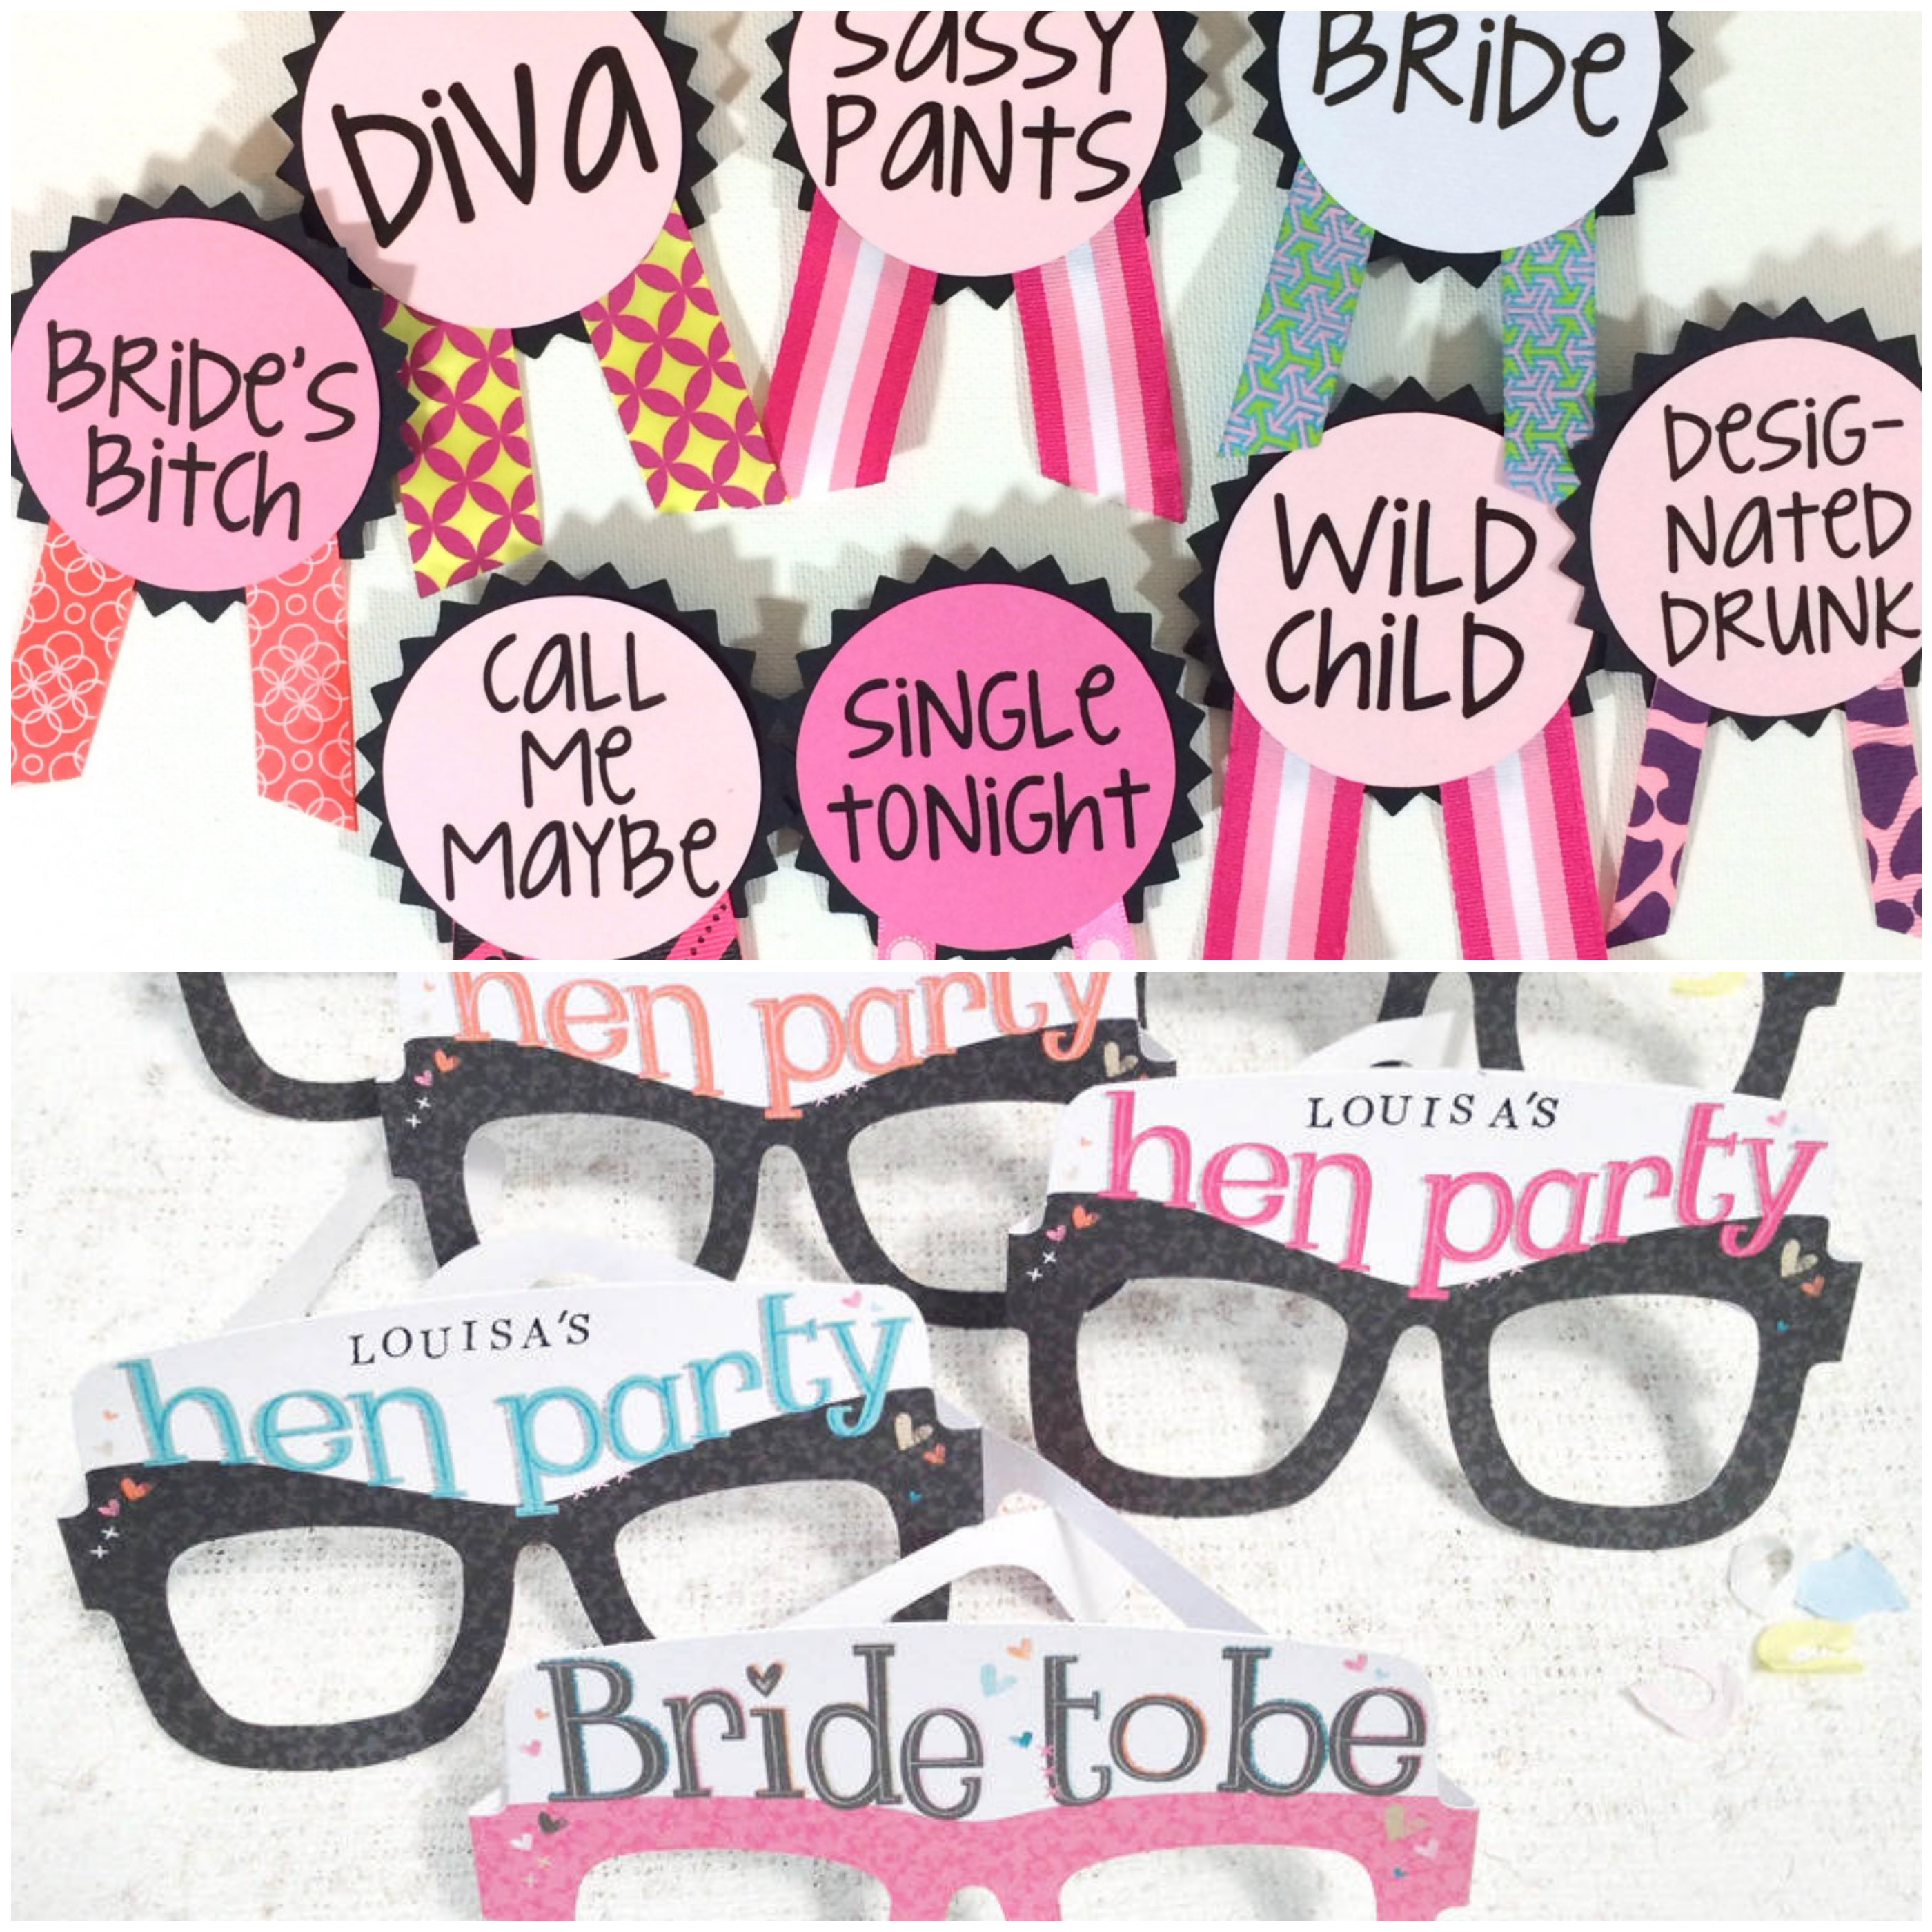 Colourful pin-ups and quirky hand-made glasses are the perfect DIY props for a hen party